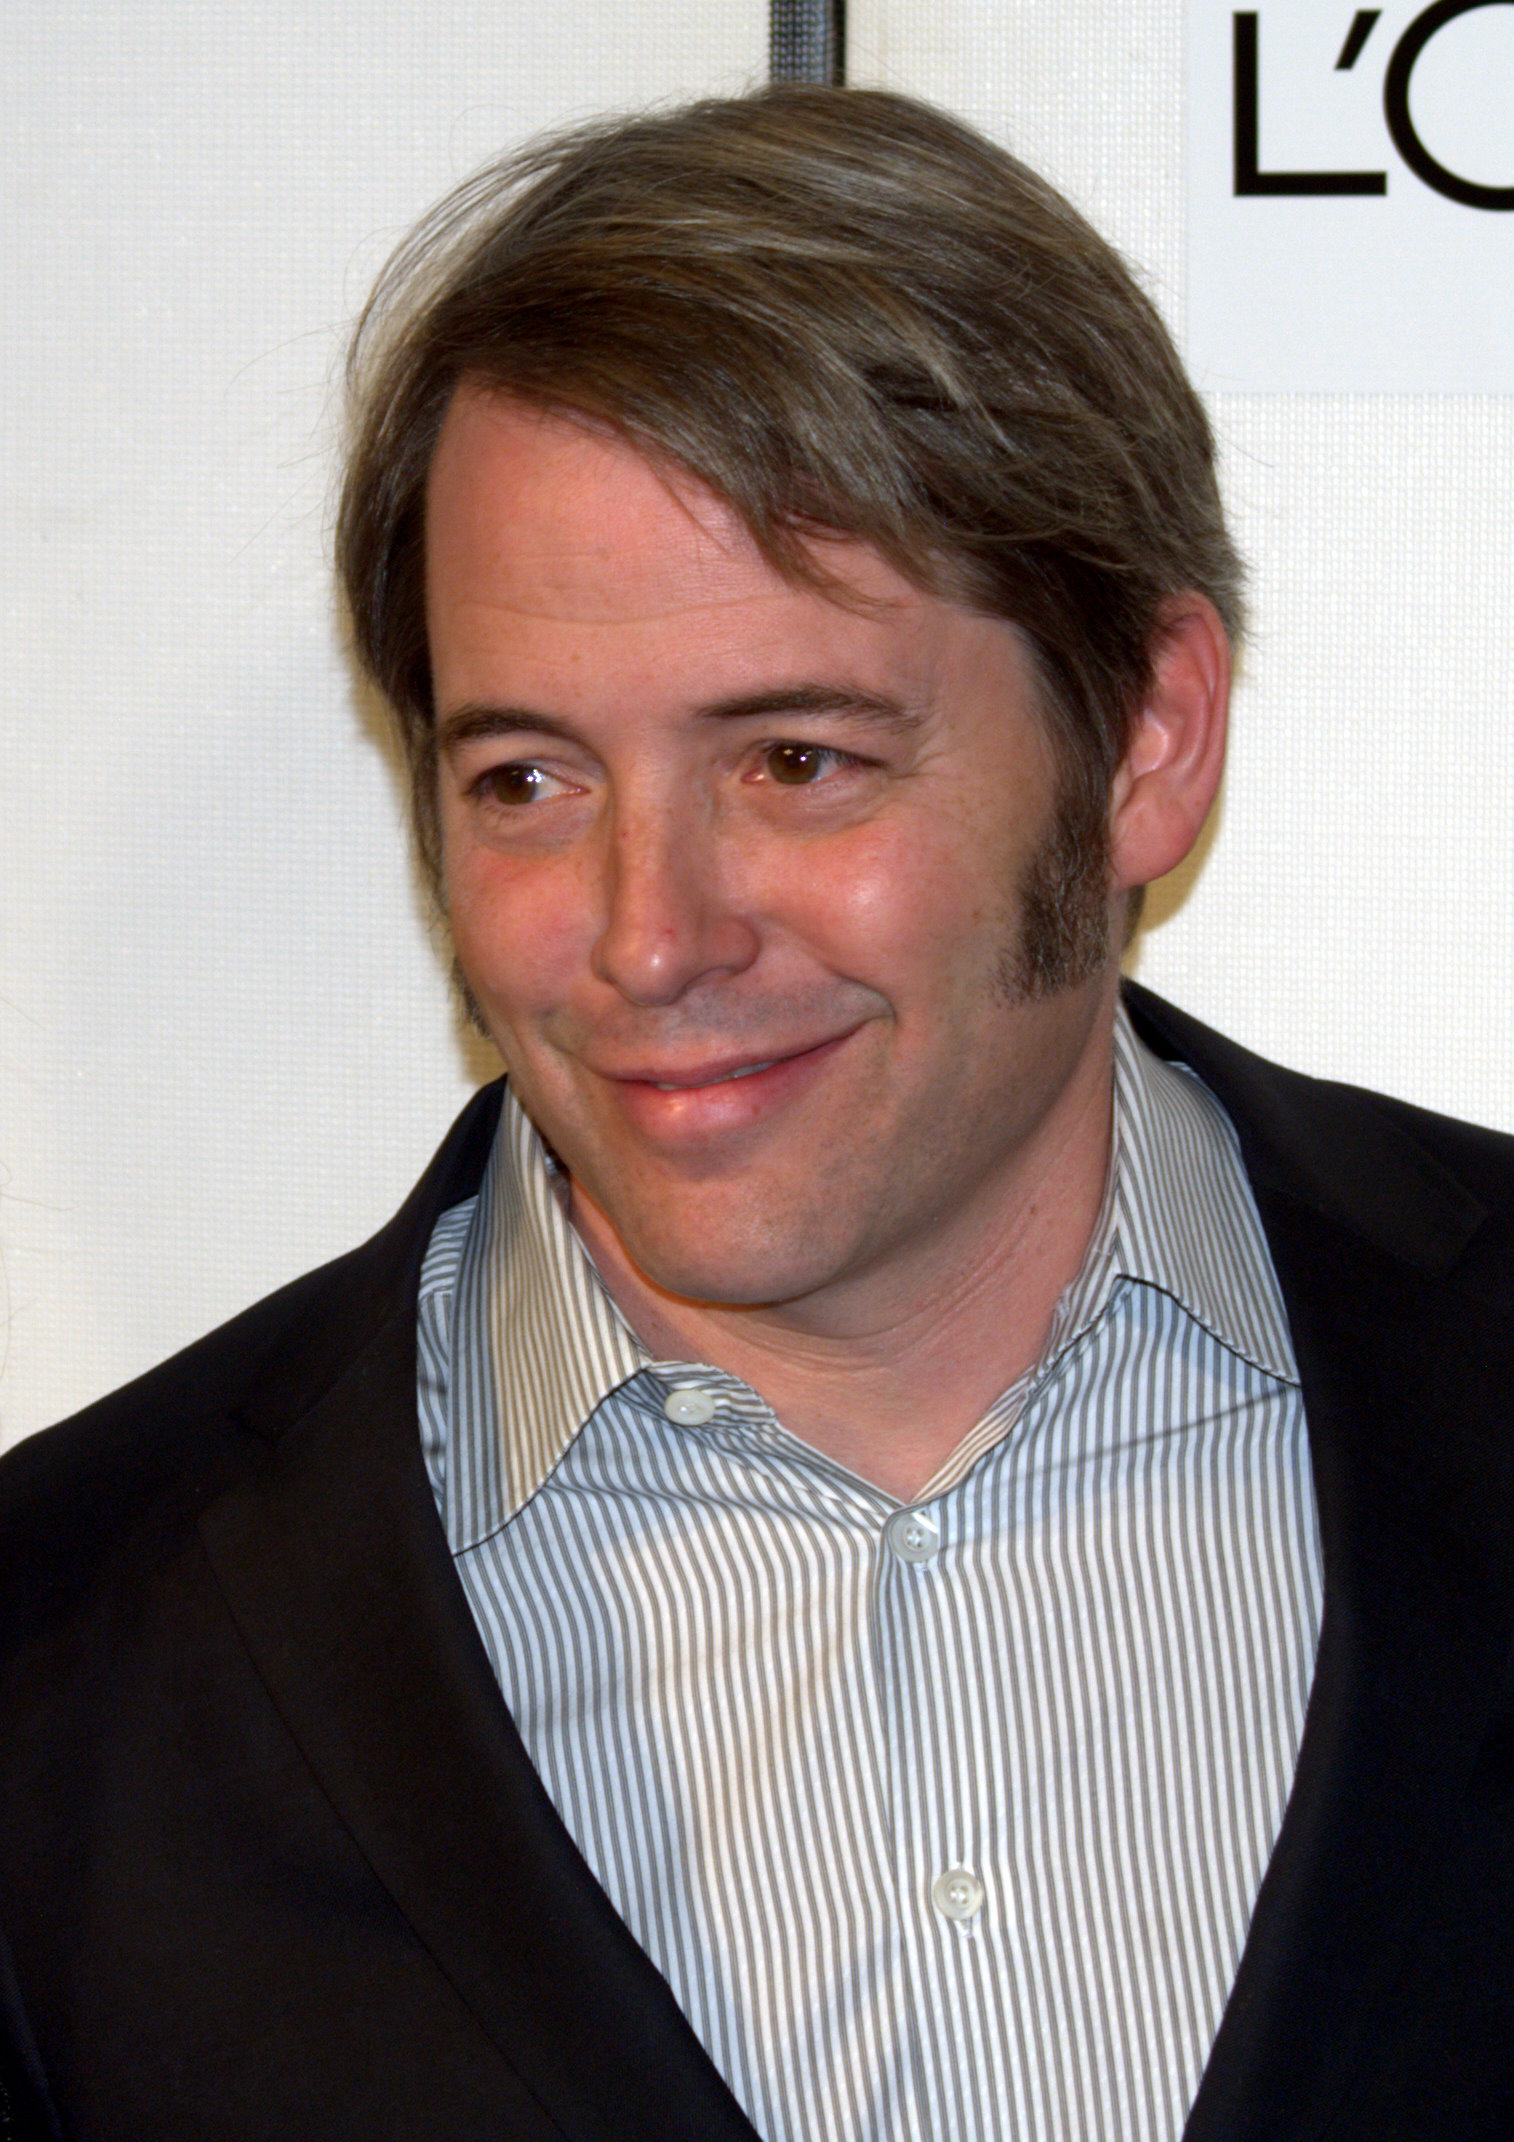 File:Matthew Broderick portrait 2009.jpg - Wikimedia Commons